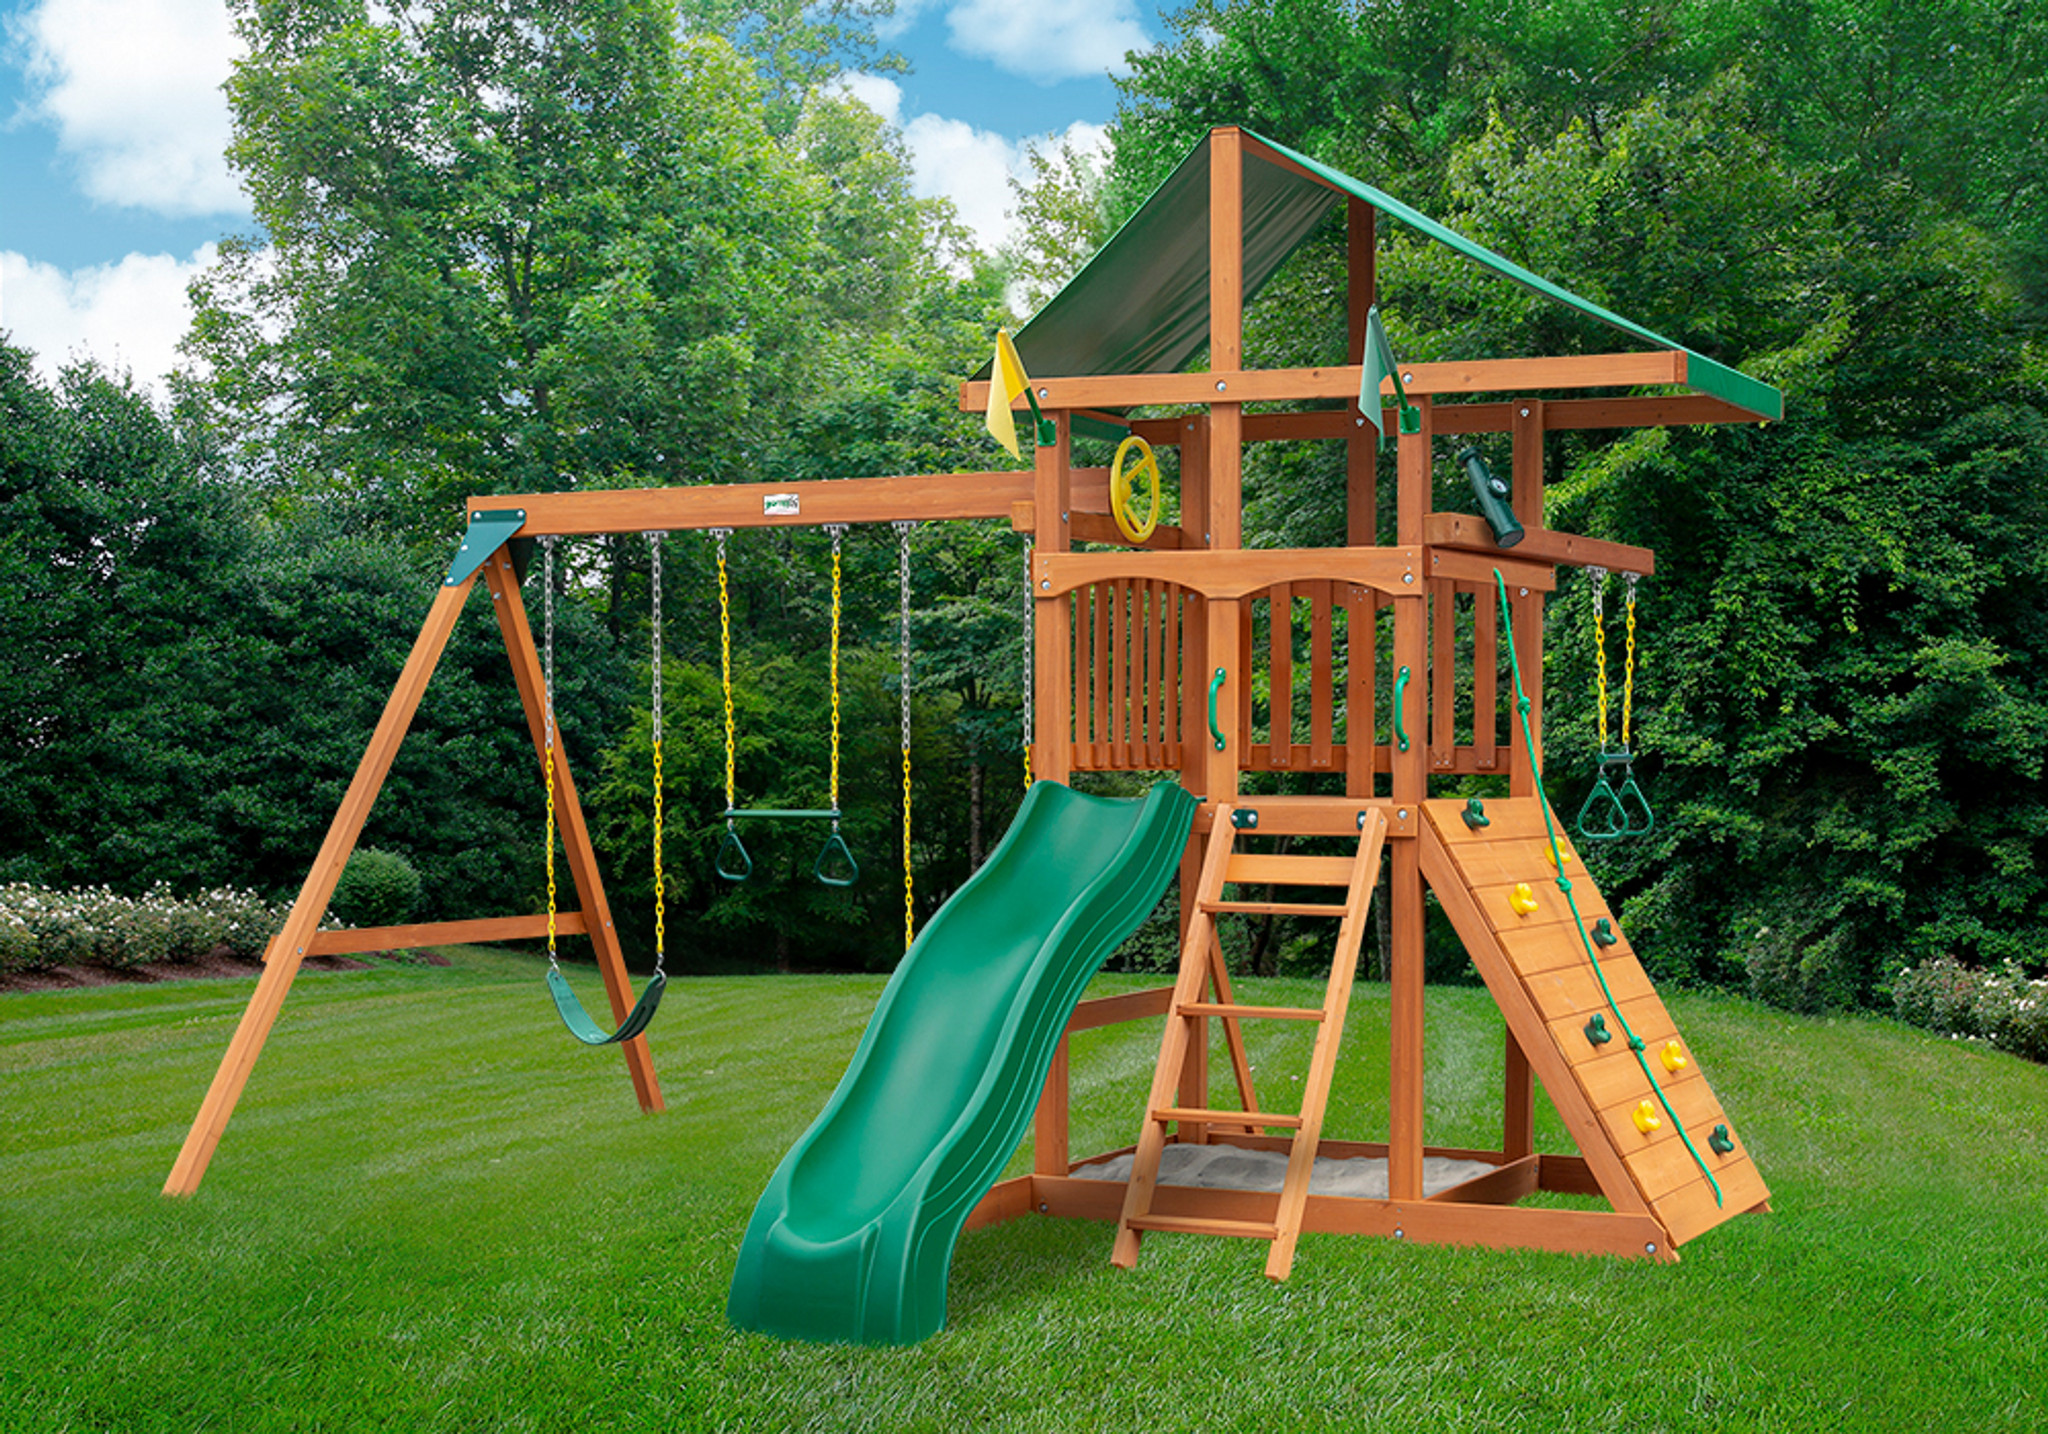 Outside view of Outing w/ Trapeze Bar Play Set from Playnation